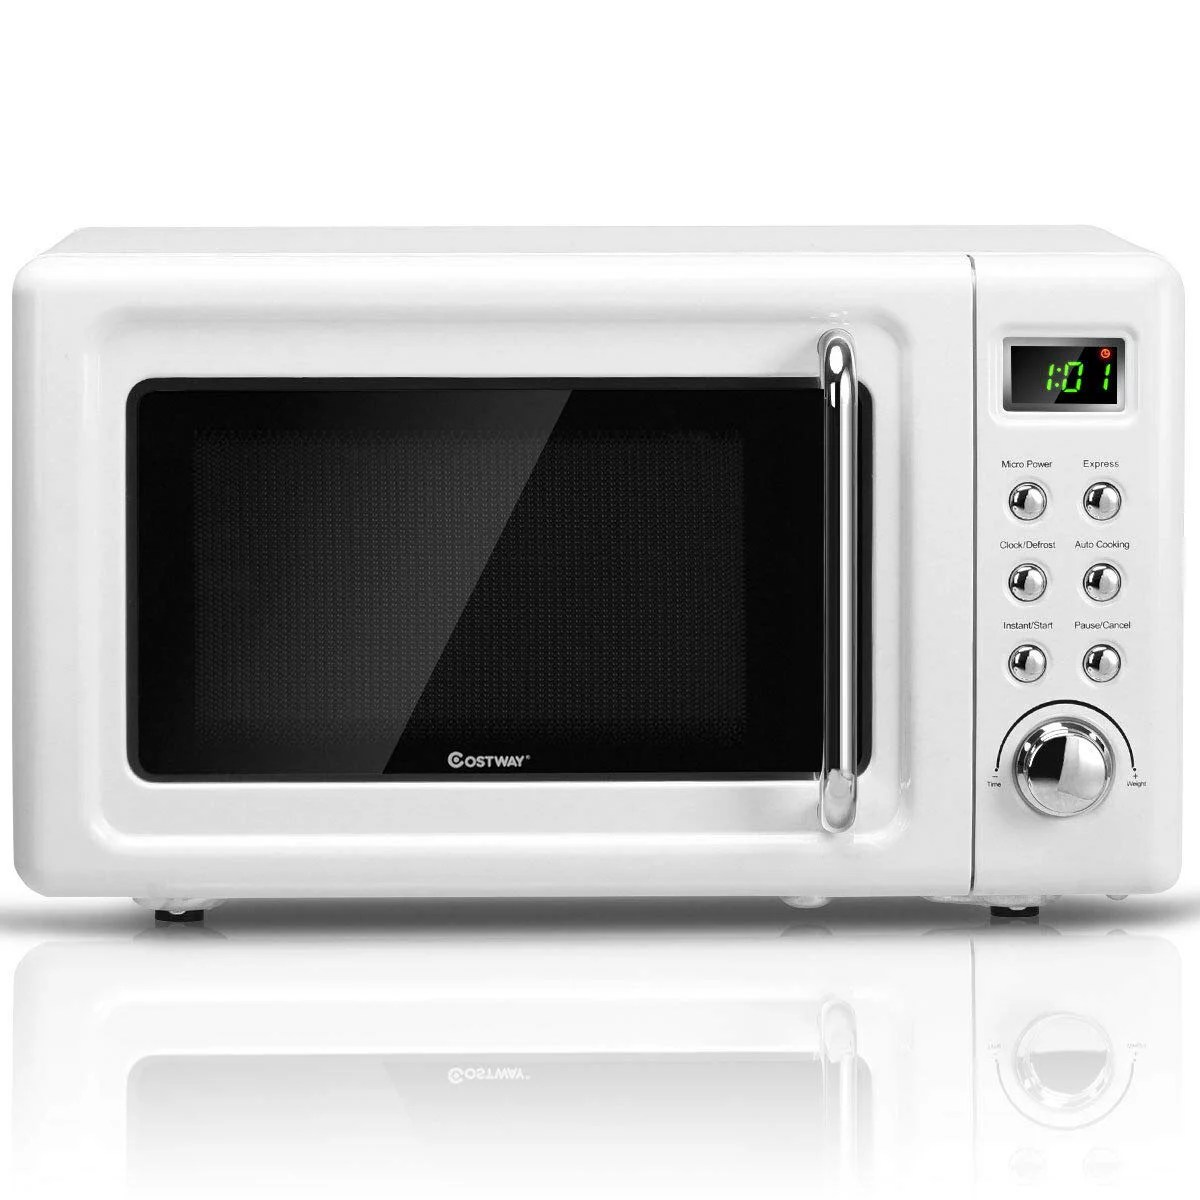 costway 0 7cu ft retro countertop microwave oven 700w led display glass turntable blackwhite